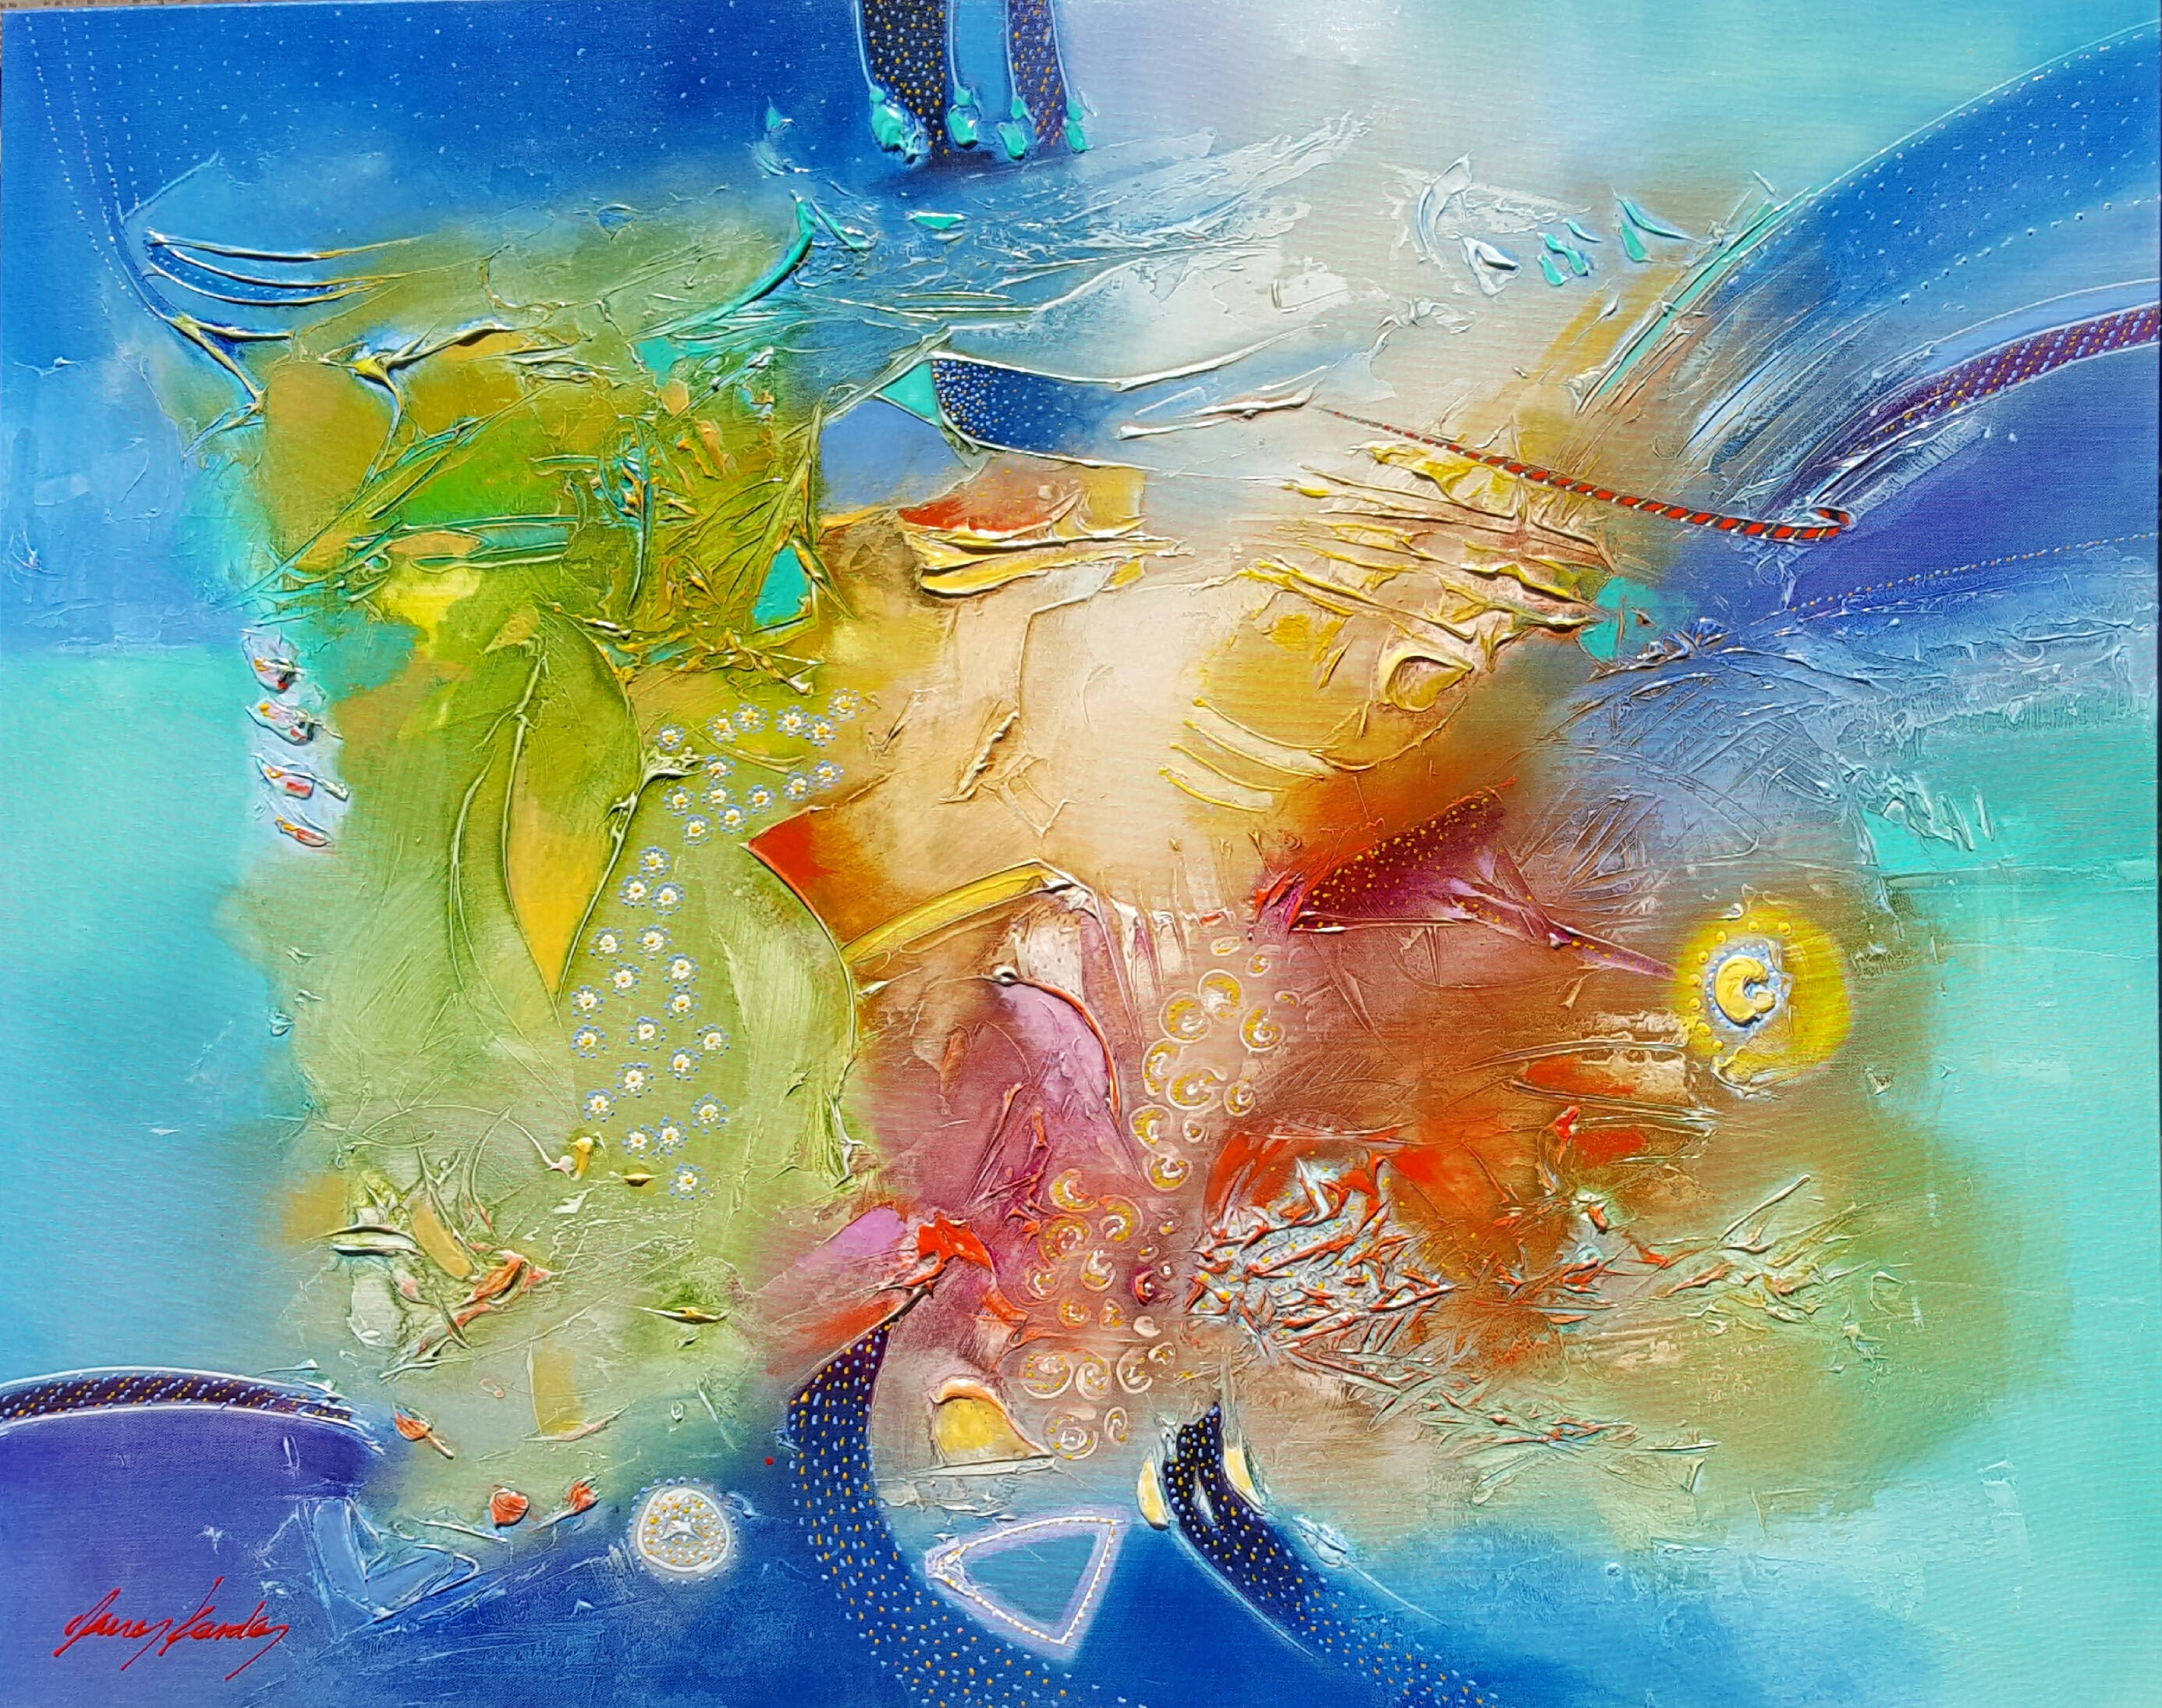 KARDOS ABSTRACT SUMMER MYKONOS 50 x 40 in